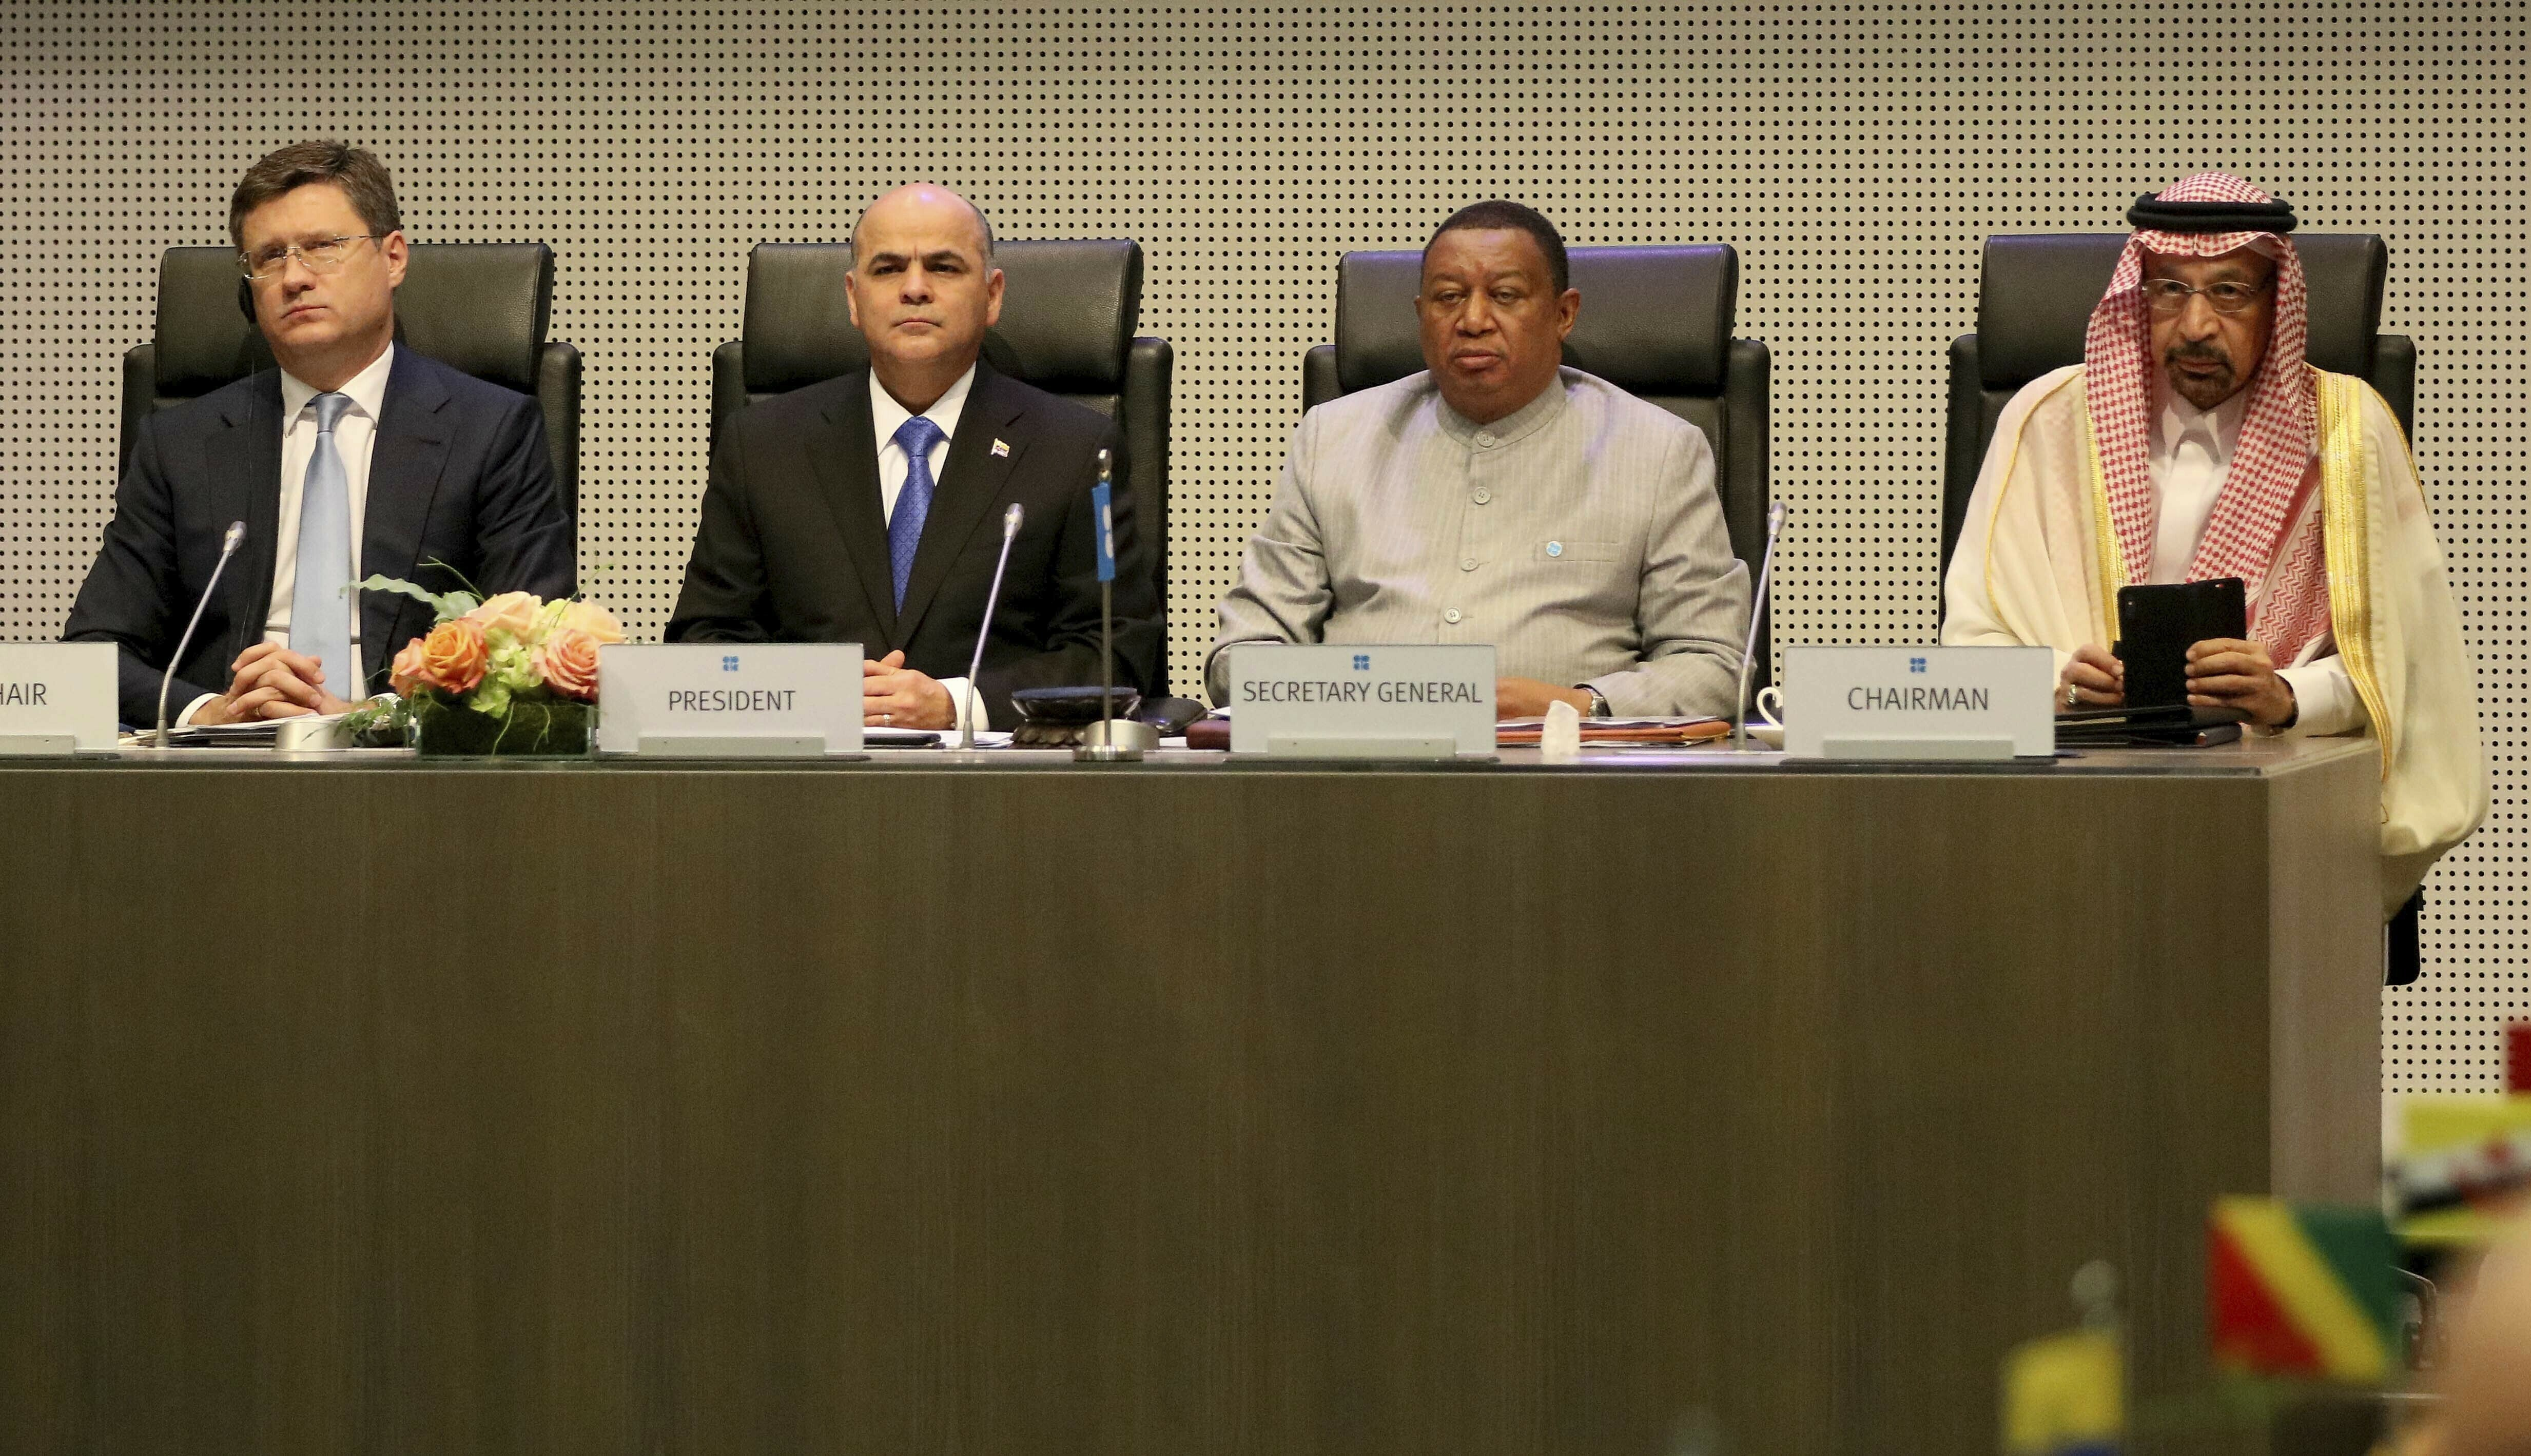 Russian Energy Minister Alexander Novak, Venezuelan Minister of Petroleum Manuel Salvador Quevedo Fernandez, OPEC Secretary General Mohammad Senusi Barkindo, and Saudi Minister of Energy, Industry, and Mineral Resources Khalid al-Falih, from left, wait for the start of a meeting of OPEC and non OPEC members in Vienna, Austria, July 2. (AP Photo/Ronald Zak)